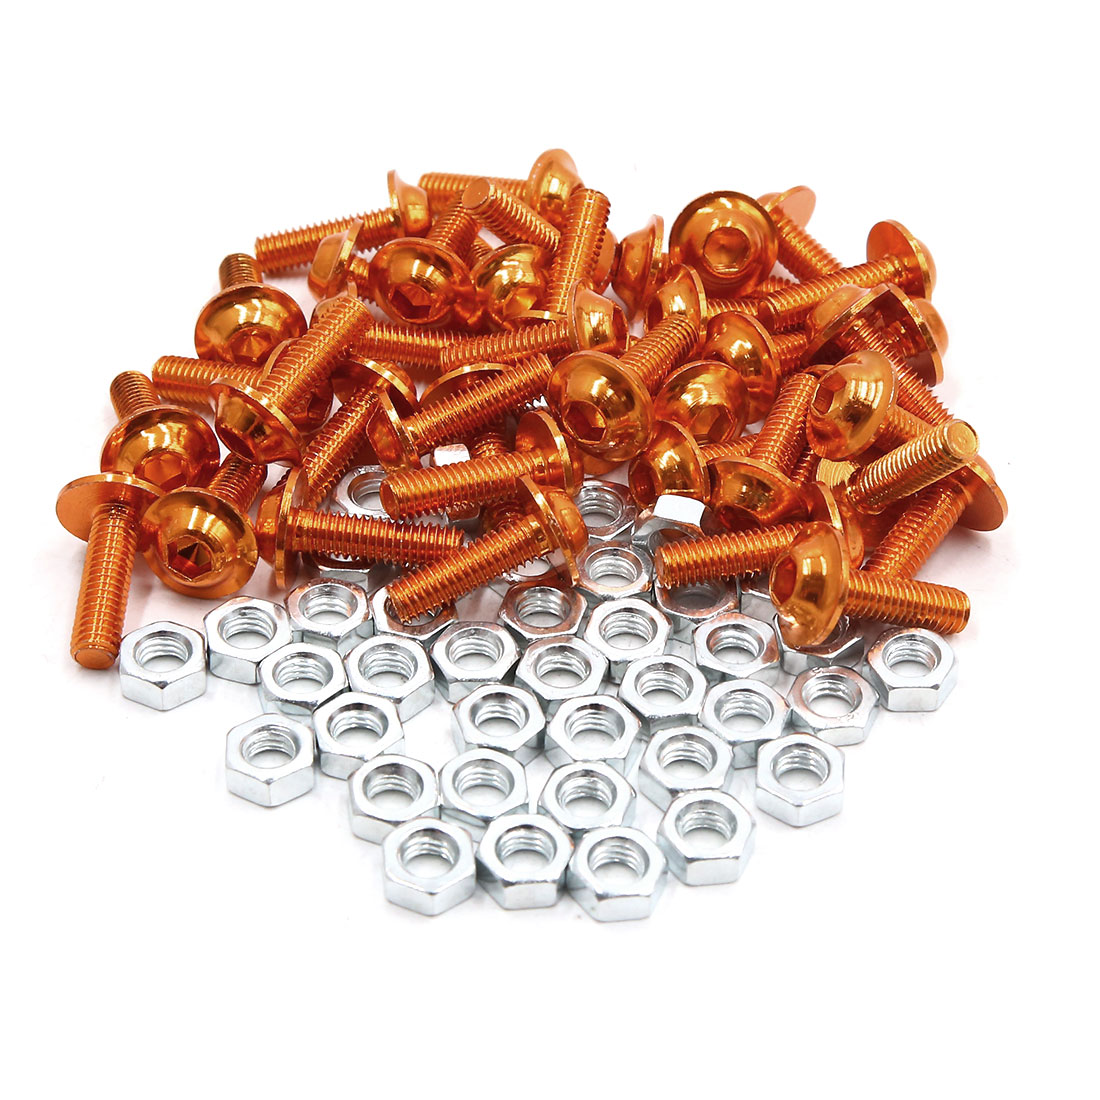 40pcs M6 Orange Aluminum Alloy Hex Socket Head Motorcycle Bolts Screws Nuts